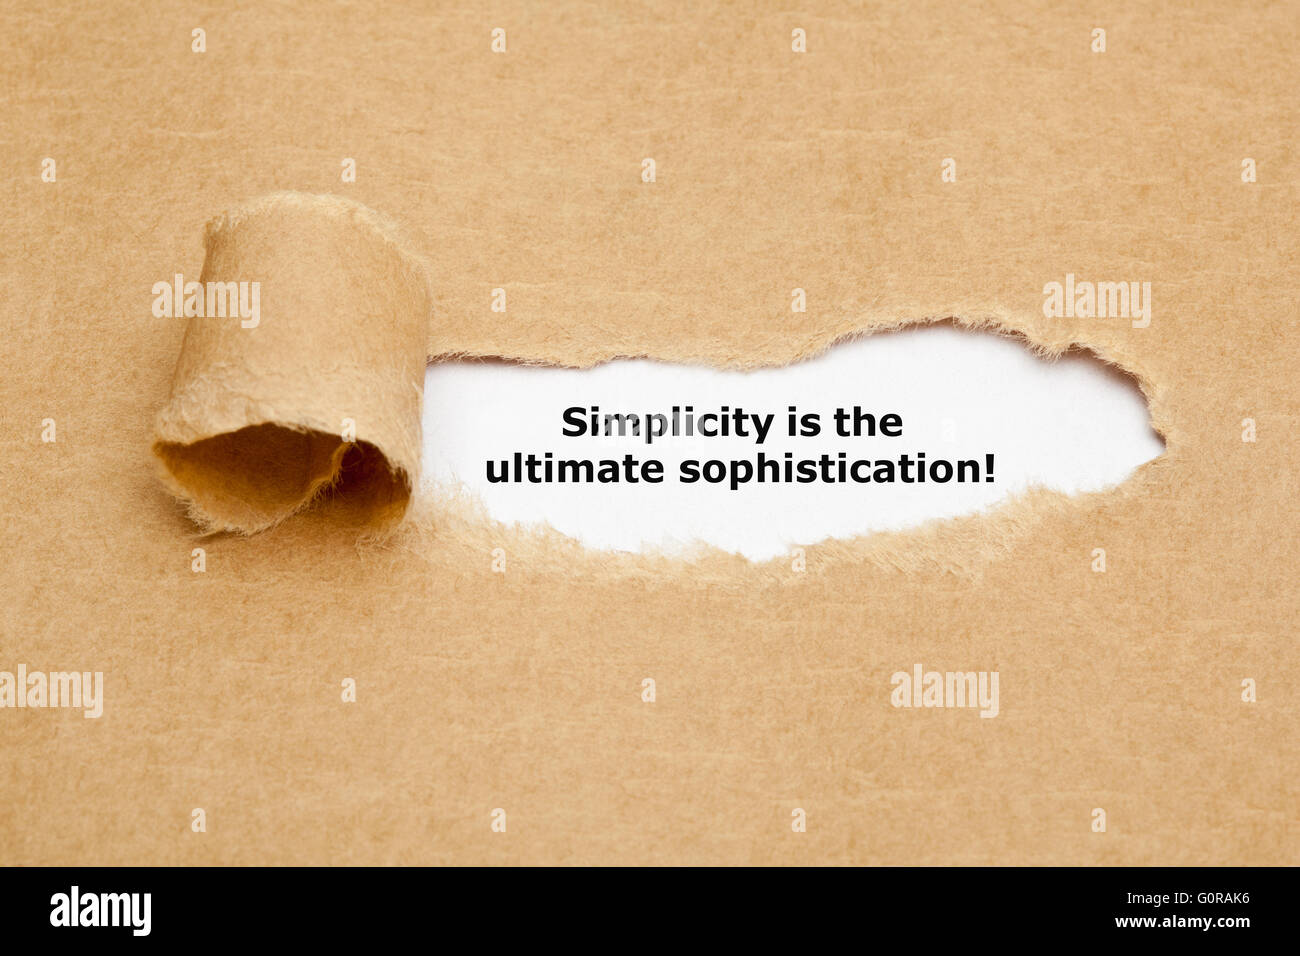 Motivational quote Simplicity is the Ultimate Sophistication, appearing behind torn brown paper. - Stock Image